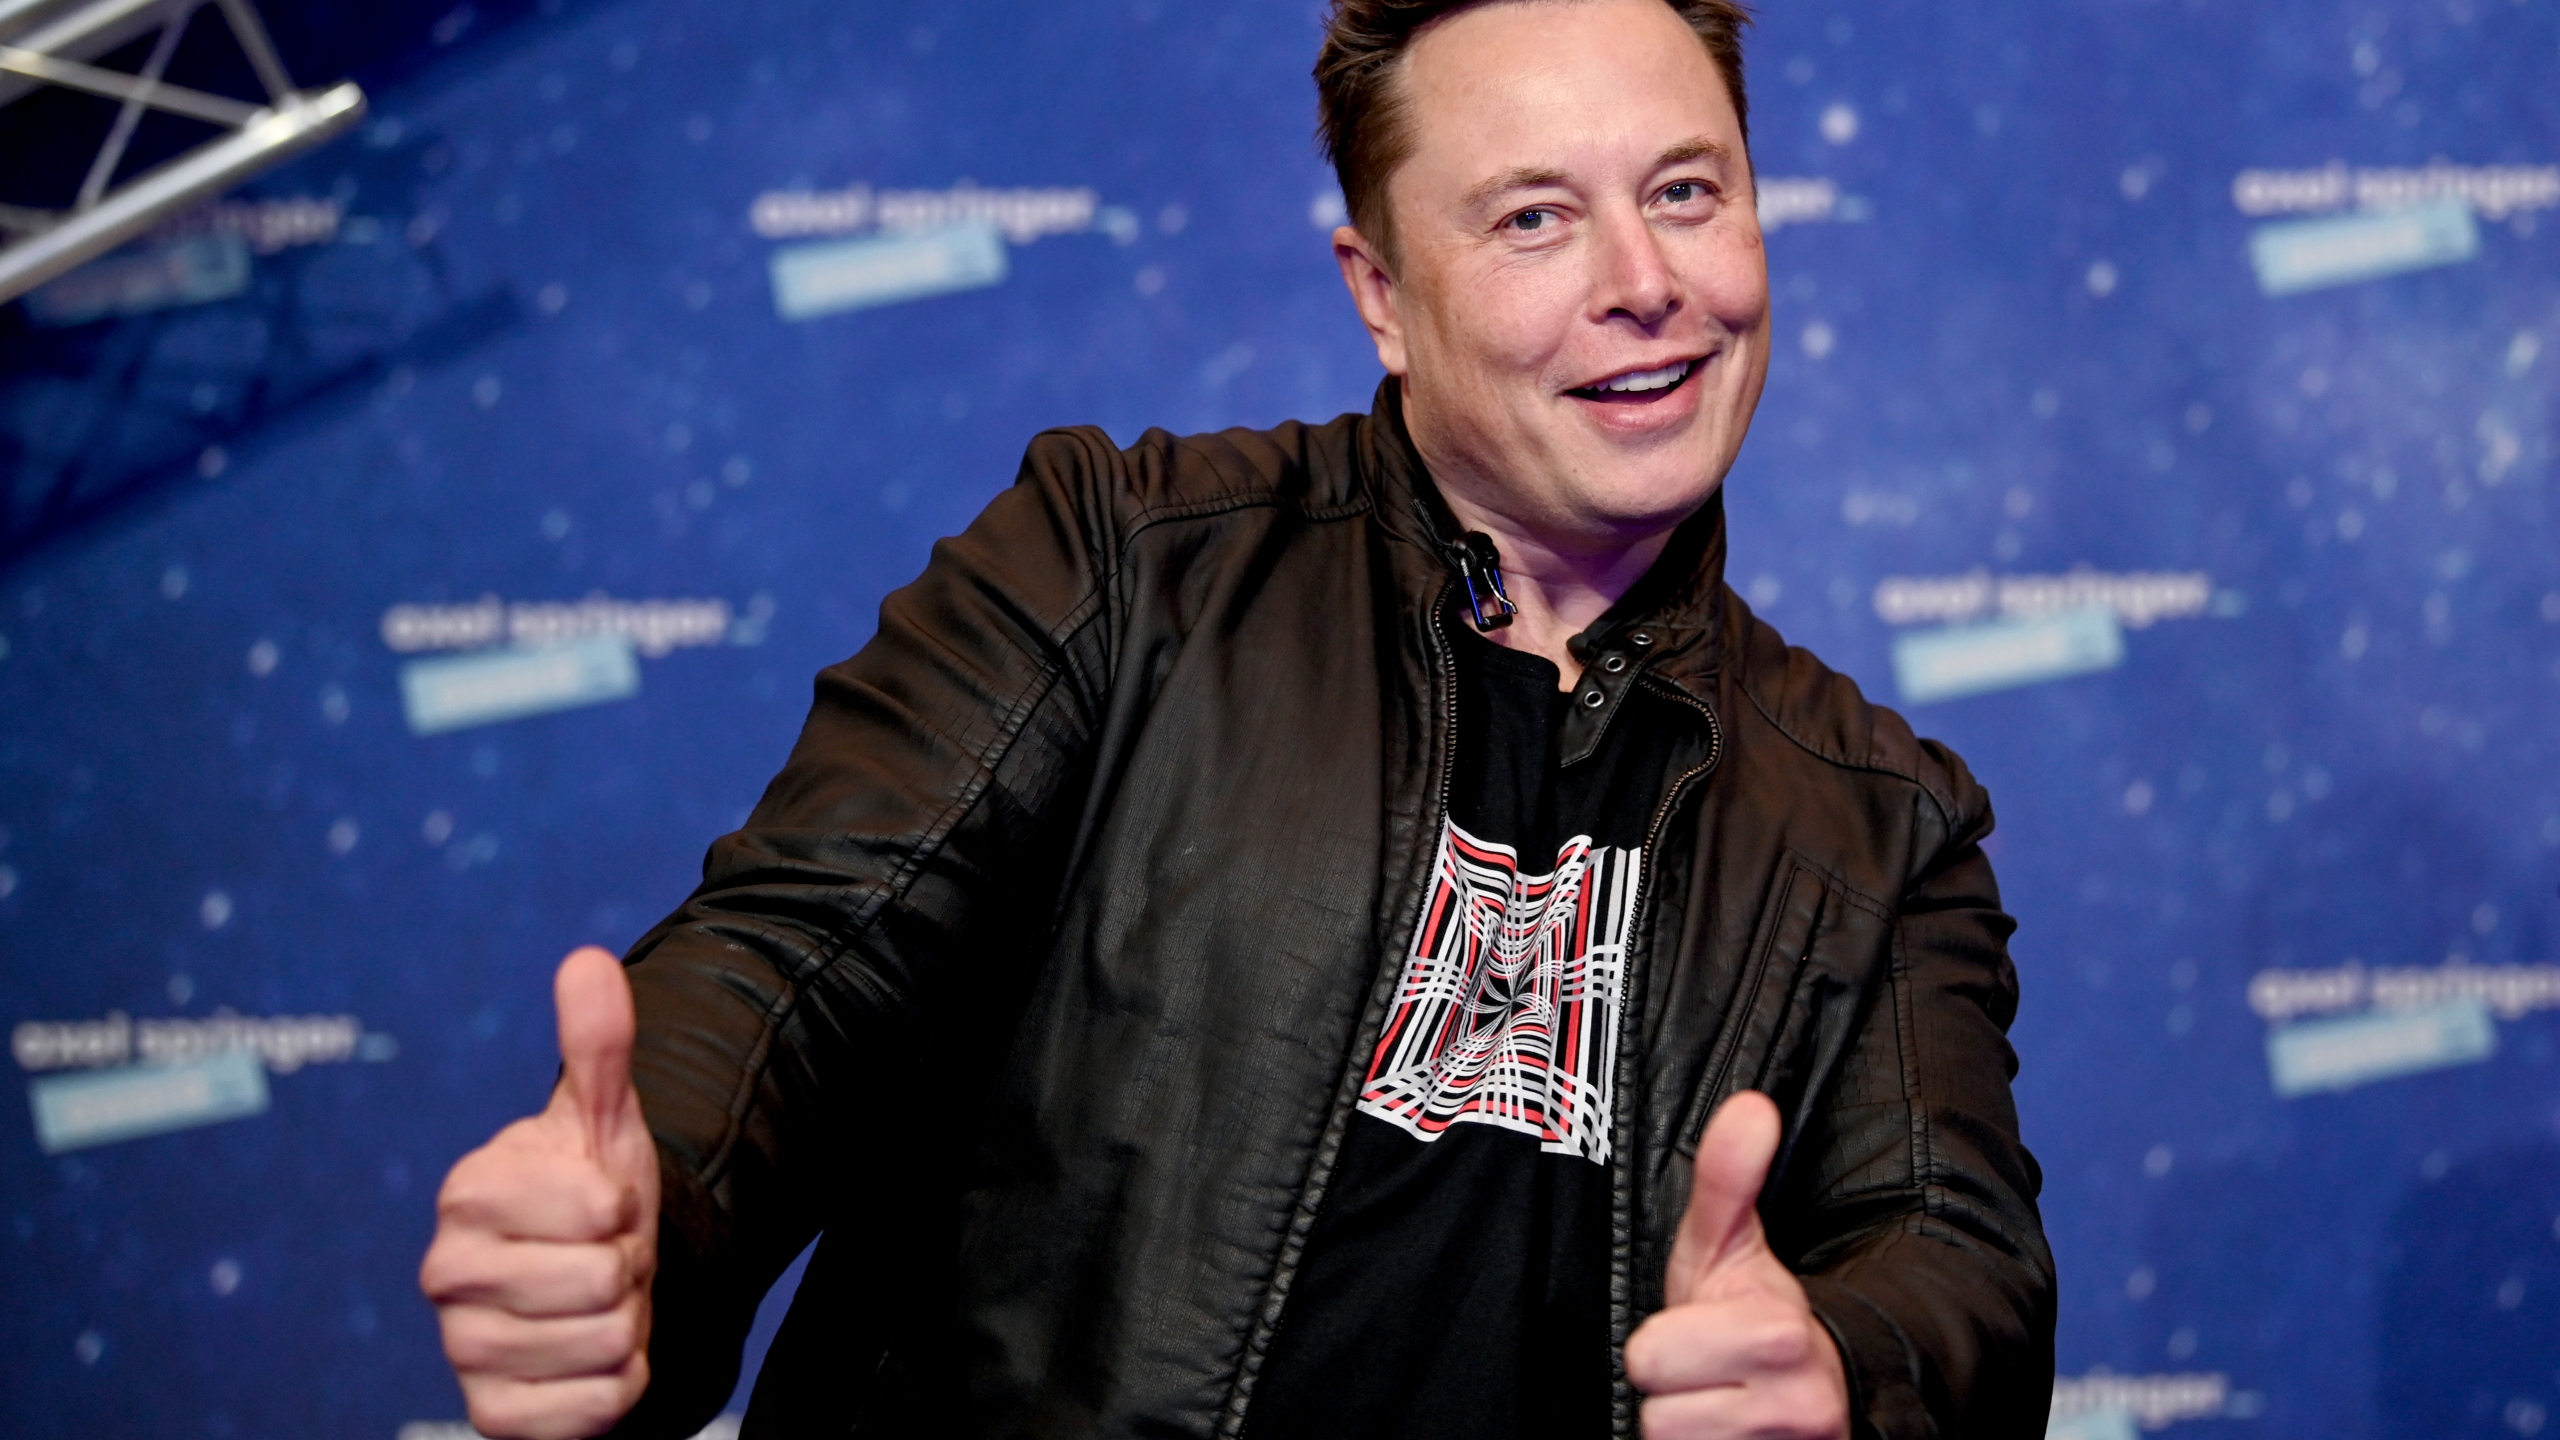 """In this Tuesday, Dec. 1, 2020 file photo, SpaceX owner and Tesla CEO Elon Musk arrives on the red carpet for the Axel Springer media award, in Berlin, Germany. Technology mogul Elon Musk has a lined up a new gig in addition to his jobs as CEO of electric car maker Tesla and spaceship maker SpaceX. He is going to host the iconic TV show """"Saturday Night Live """" on May 8, 2021. (AP Photo/Britta Pedersen, Pool, File)"""